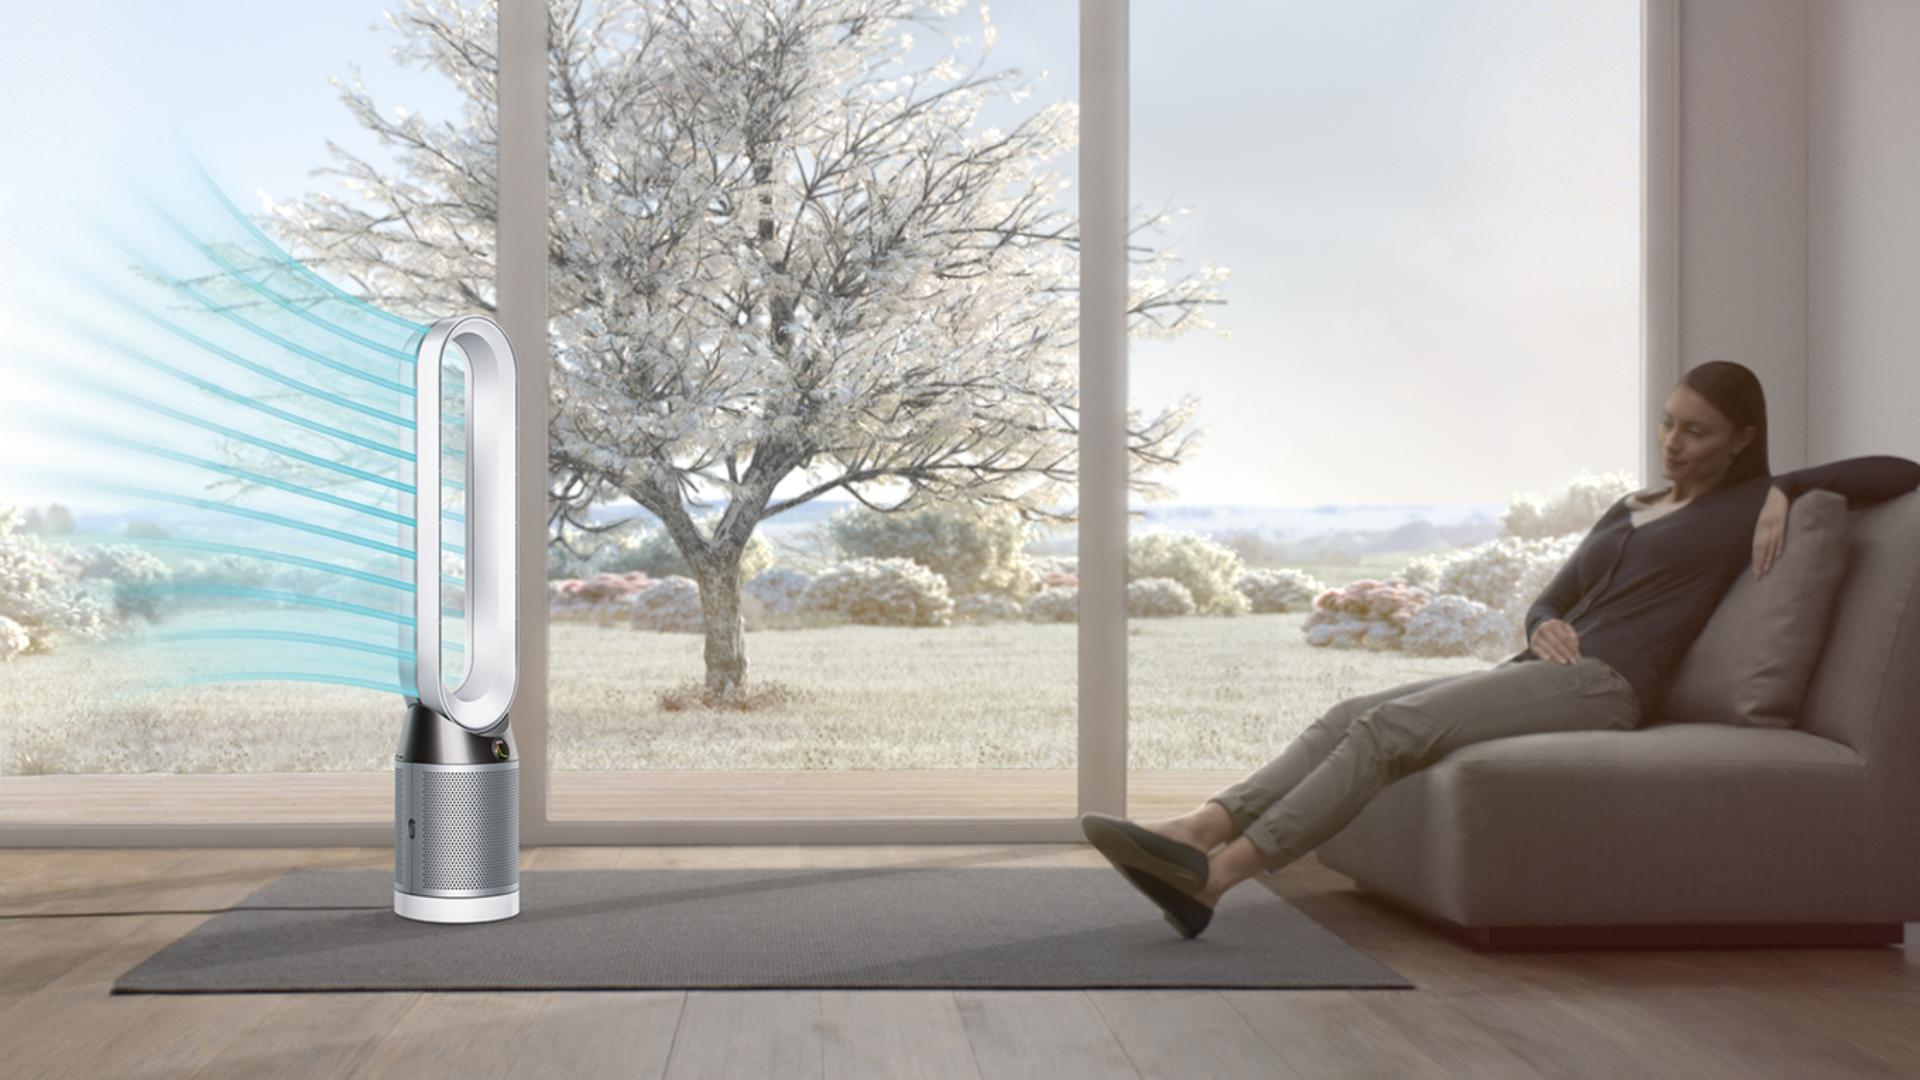 The Dyson Pure Cool purifier fan in diffused air projection, indoors